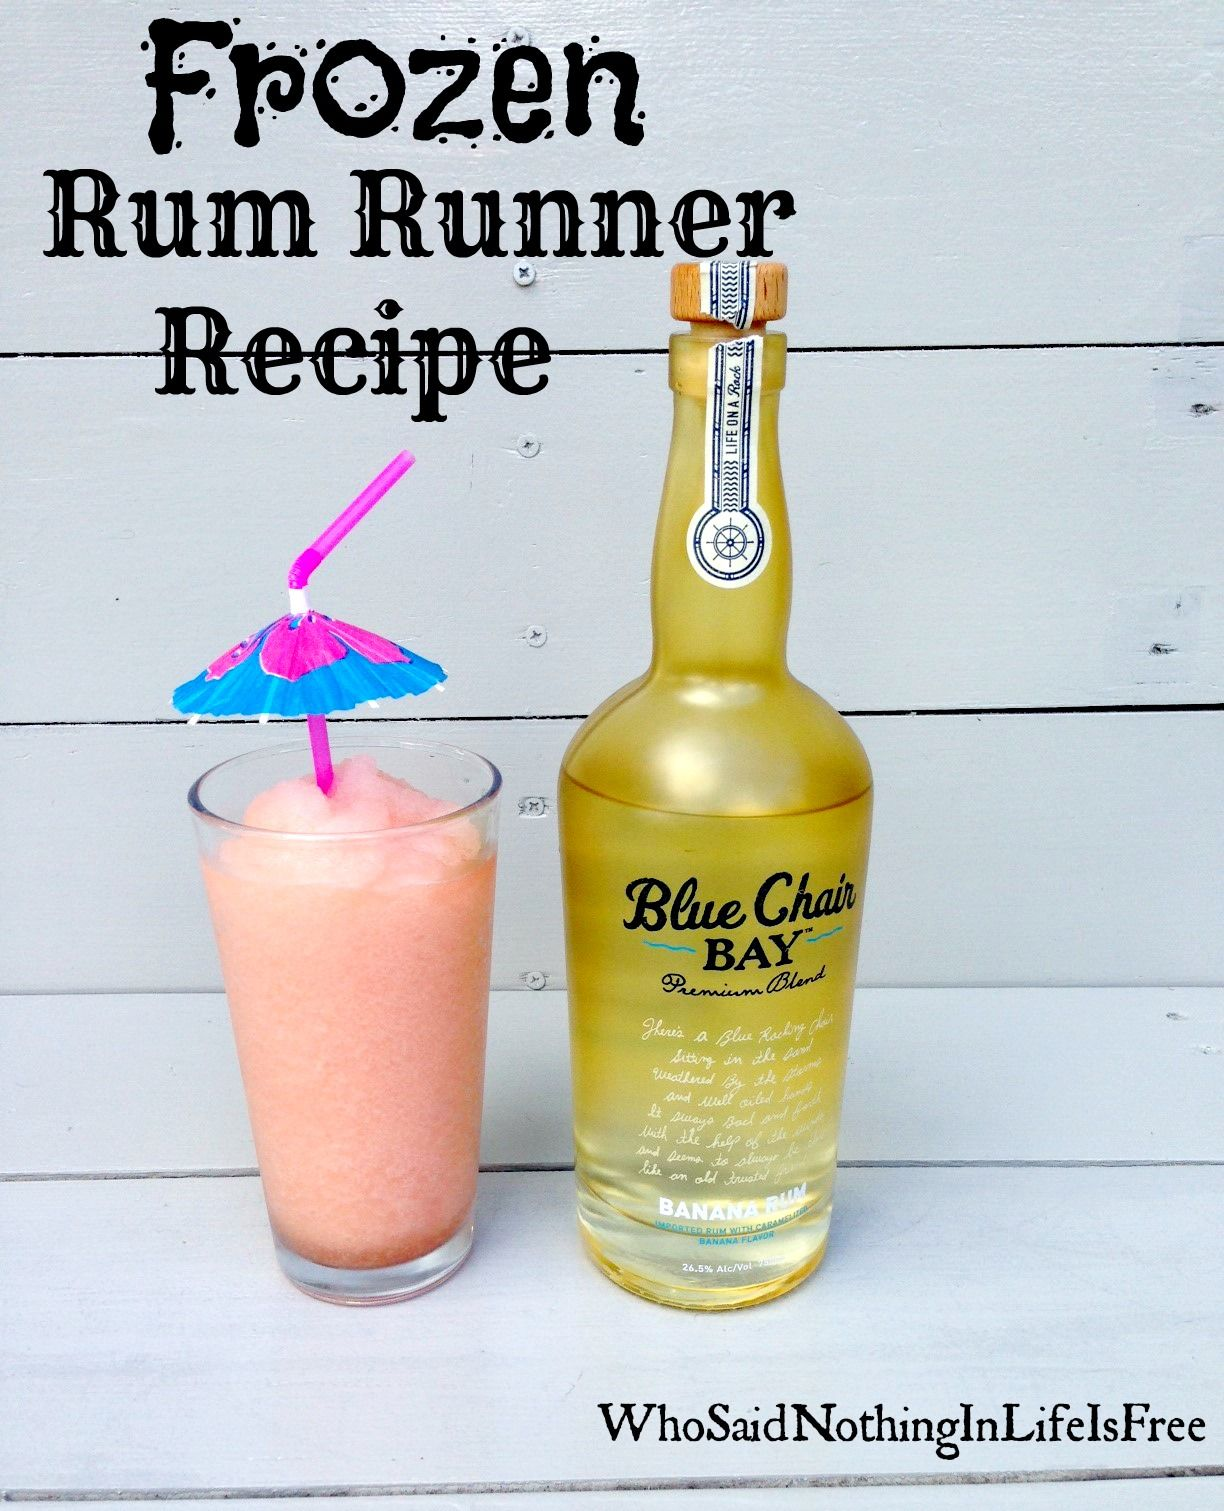 buy blue chair bay rum online chinese chippendale chairs for sale frozen runner cocktail made with banana